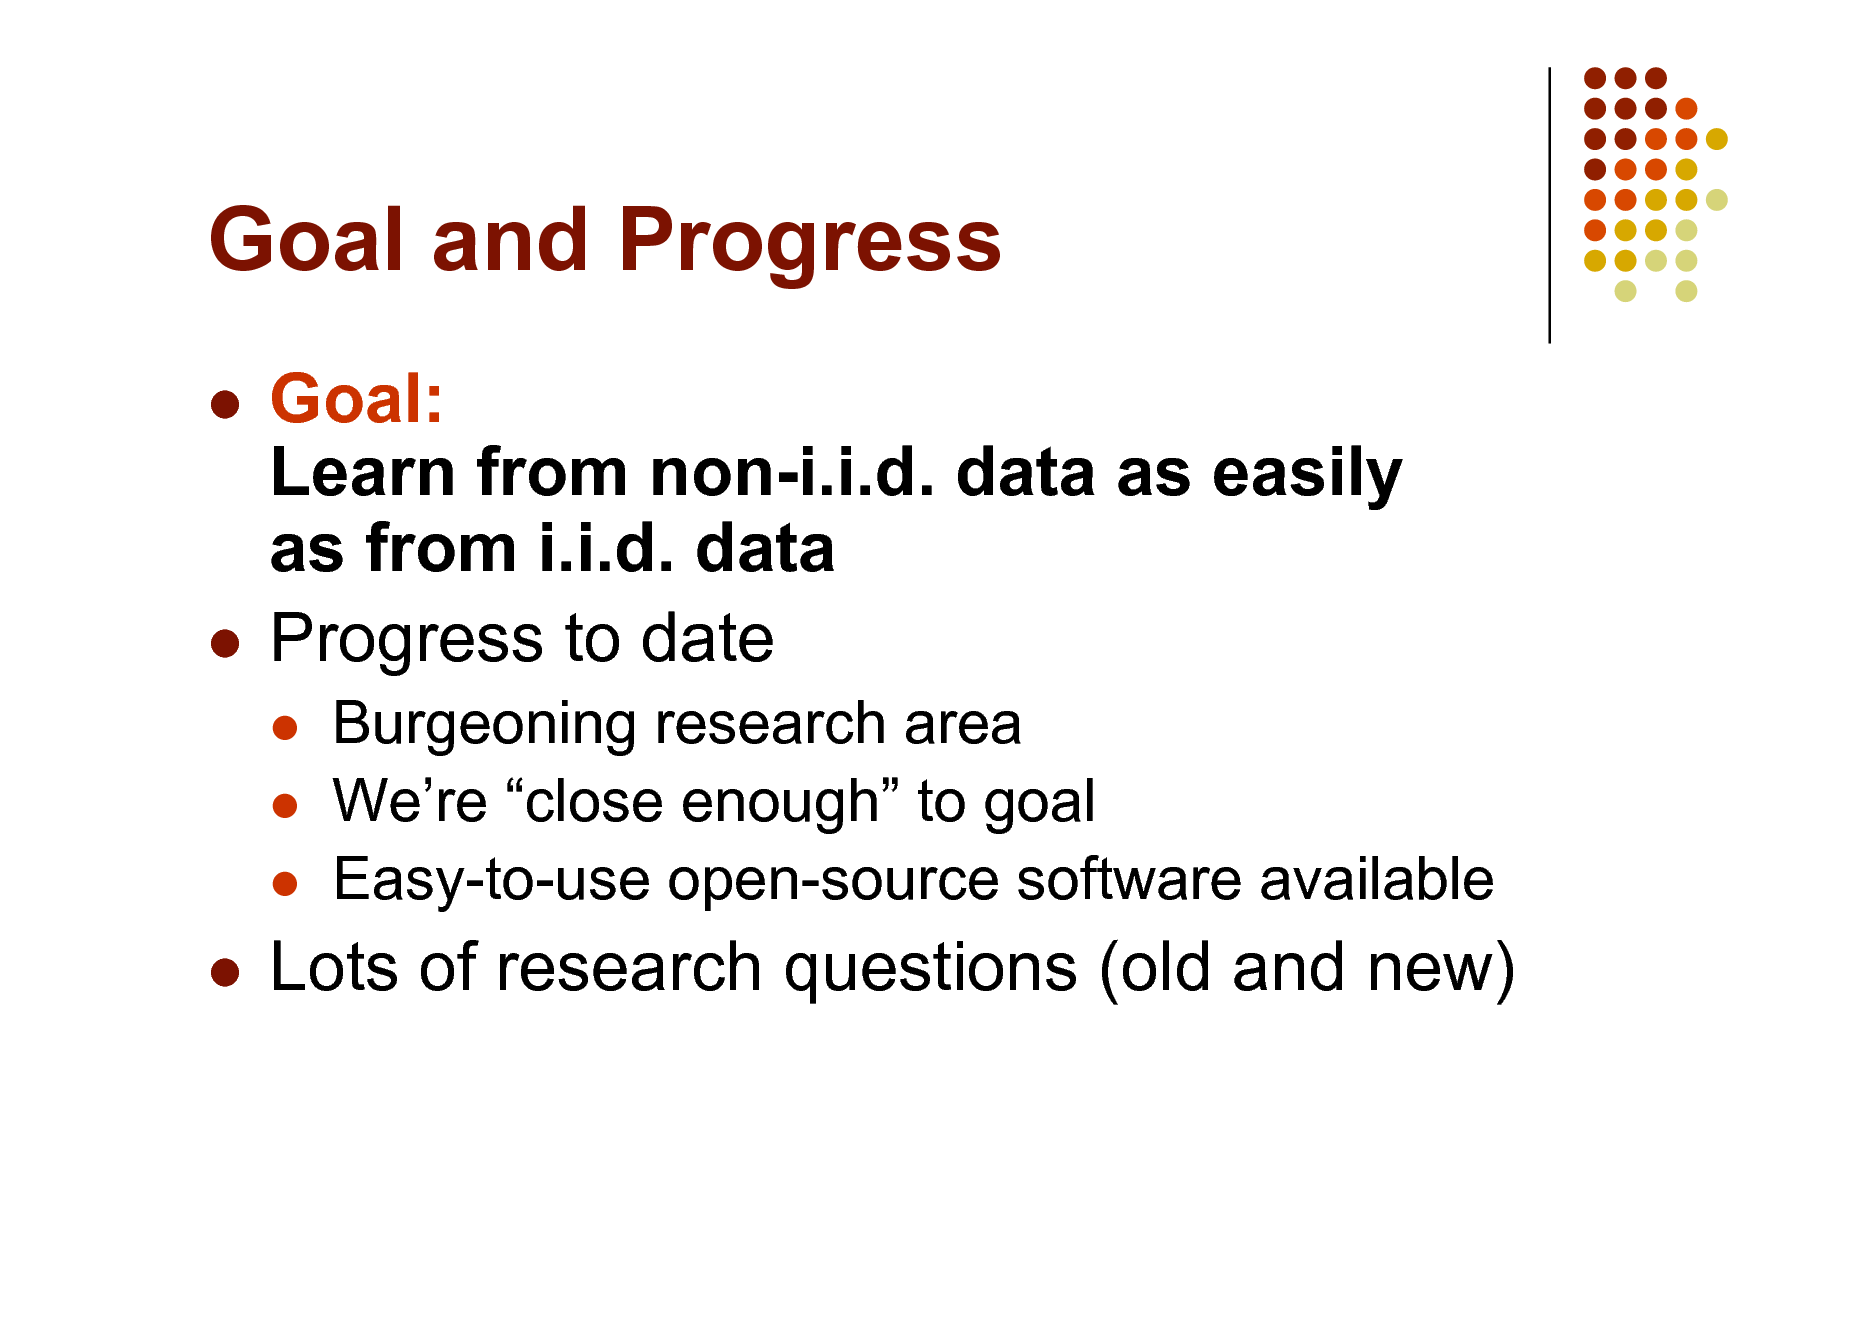 Slide: Goal and Progress Goal: Learn from non-i.i.d. data as easily as from i.i.d. data  Progress to date      Burgeoning research area Were close enough to goal Easy-to-use open-source software available    Lots of research questions (old and new)